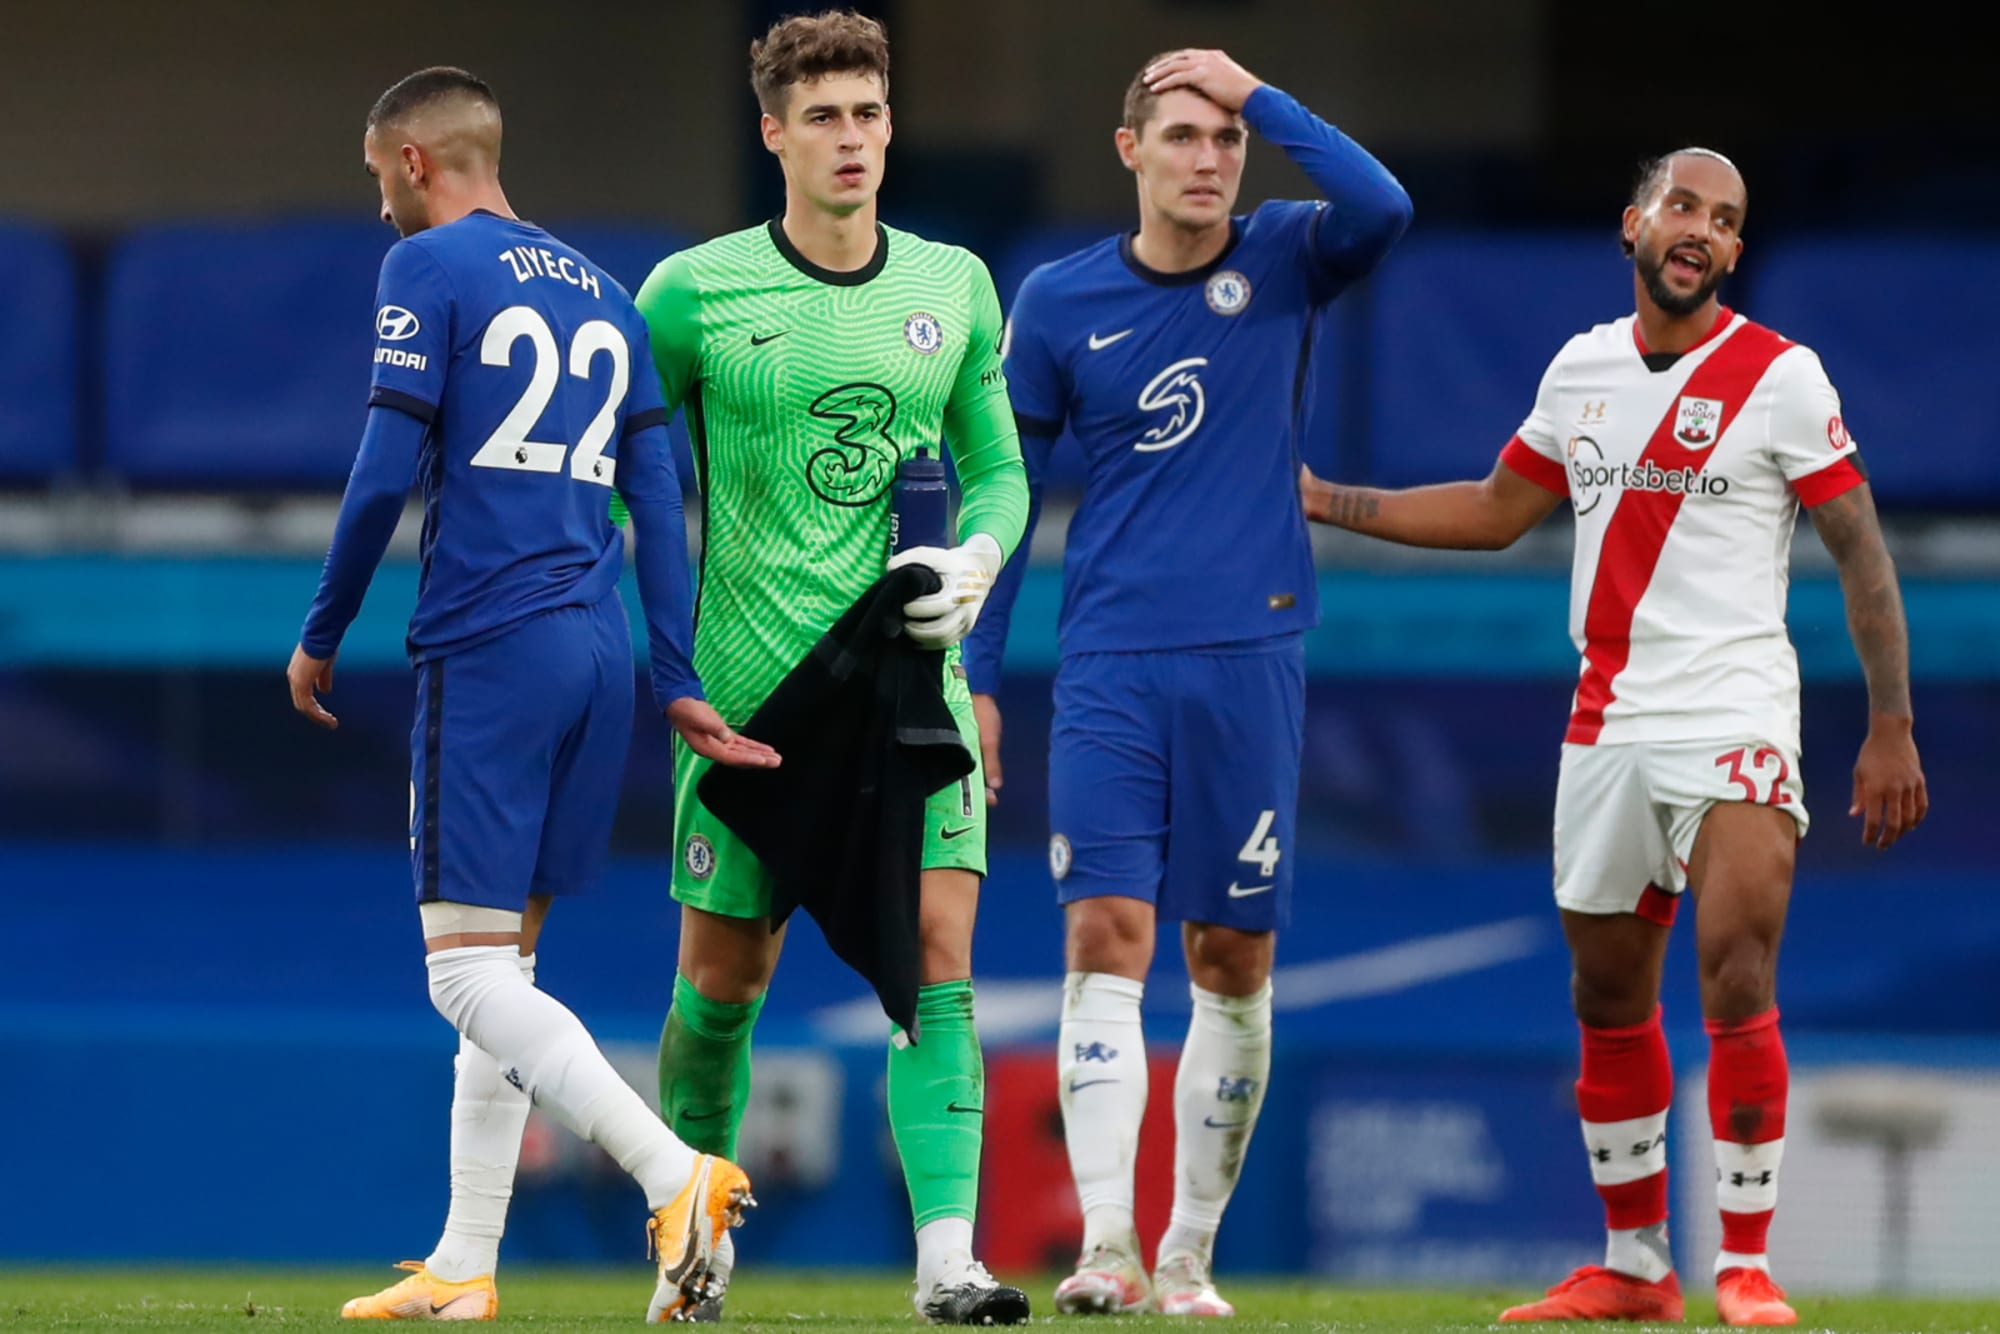 Chelsea player ratings vs. Southampton: Blues drop a pair of points